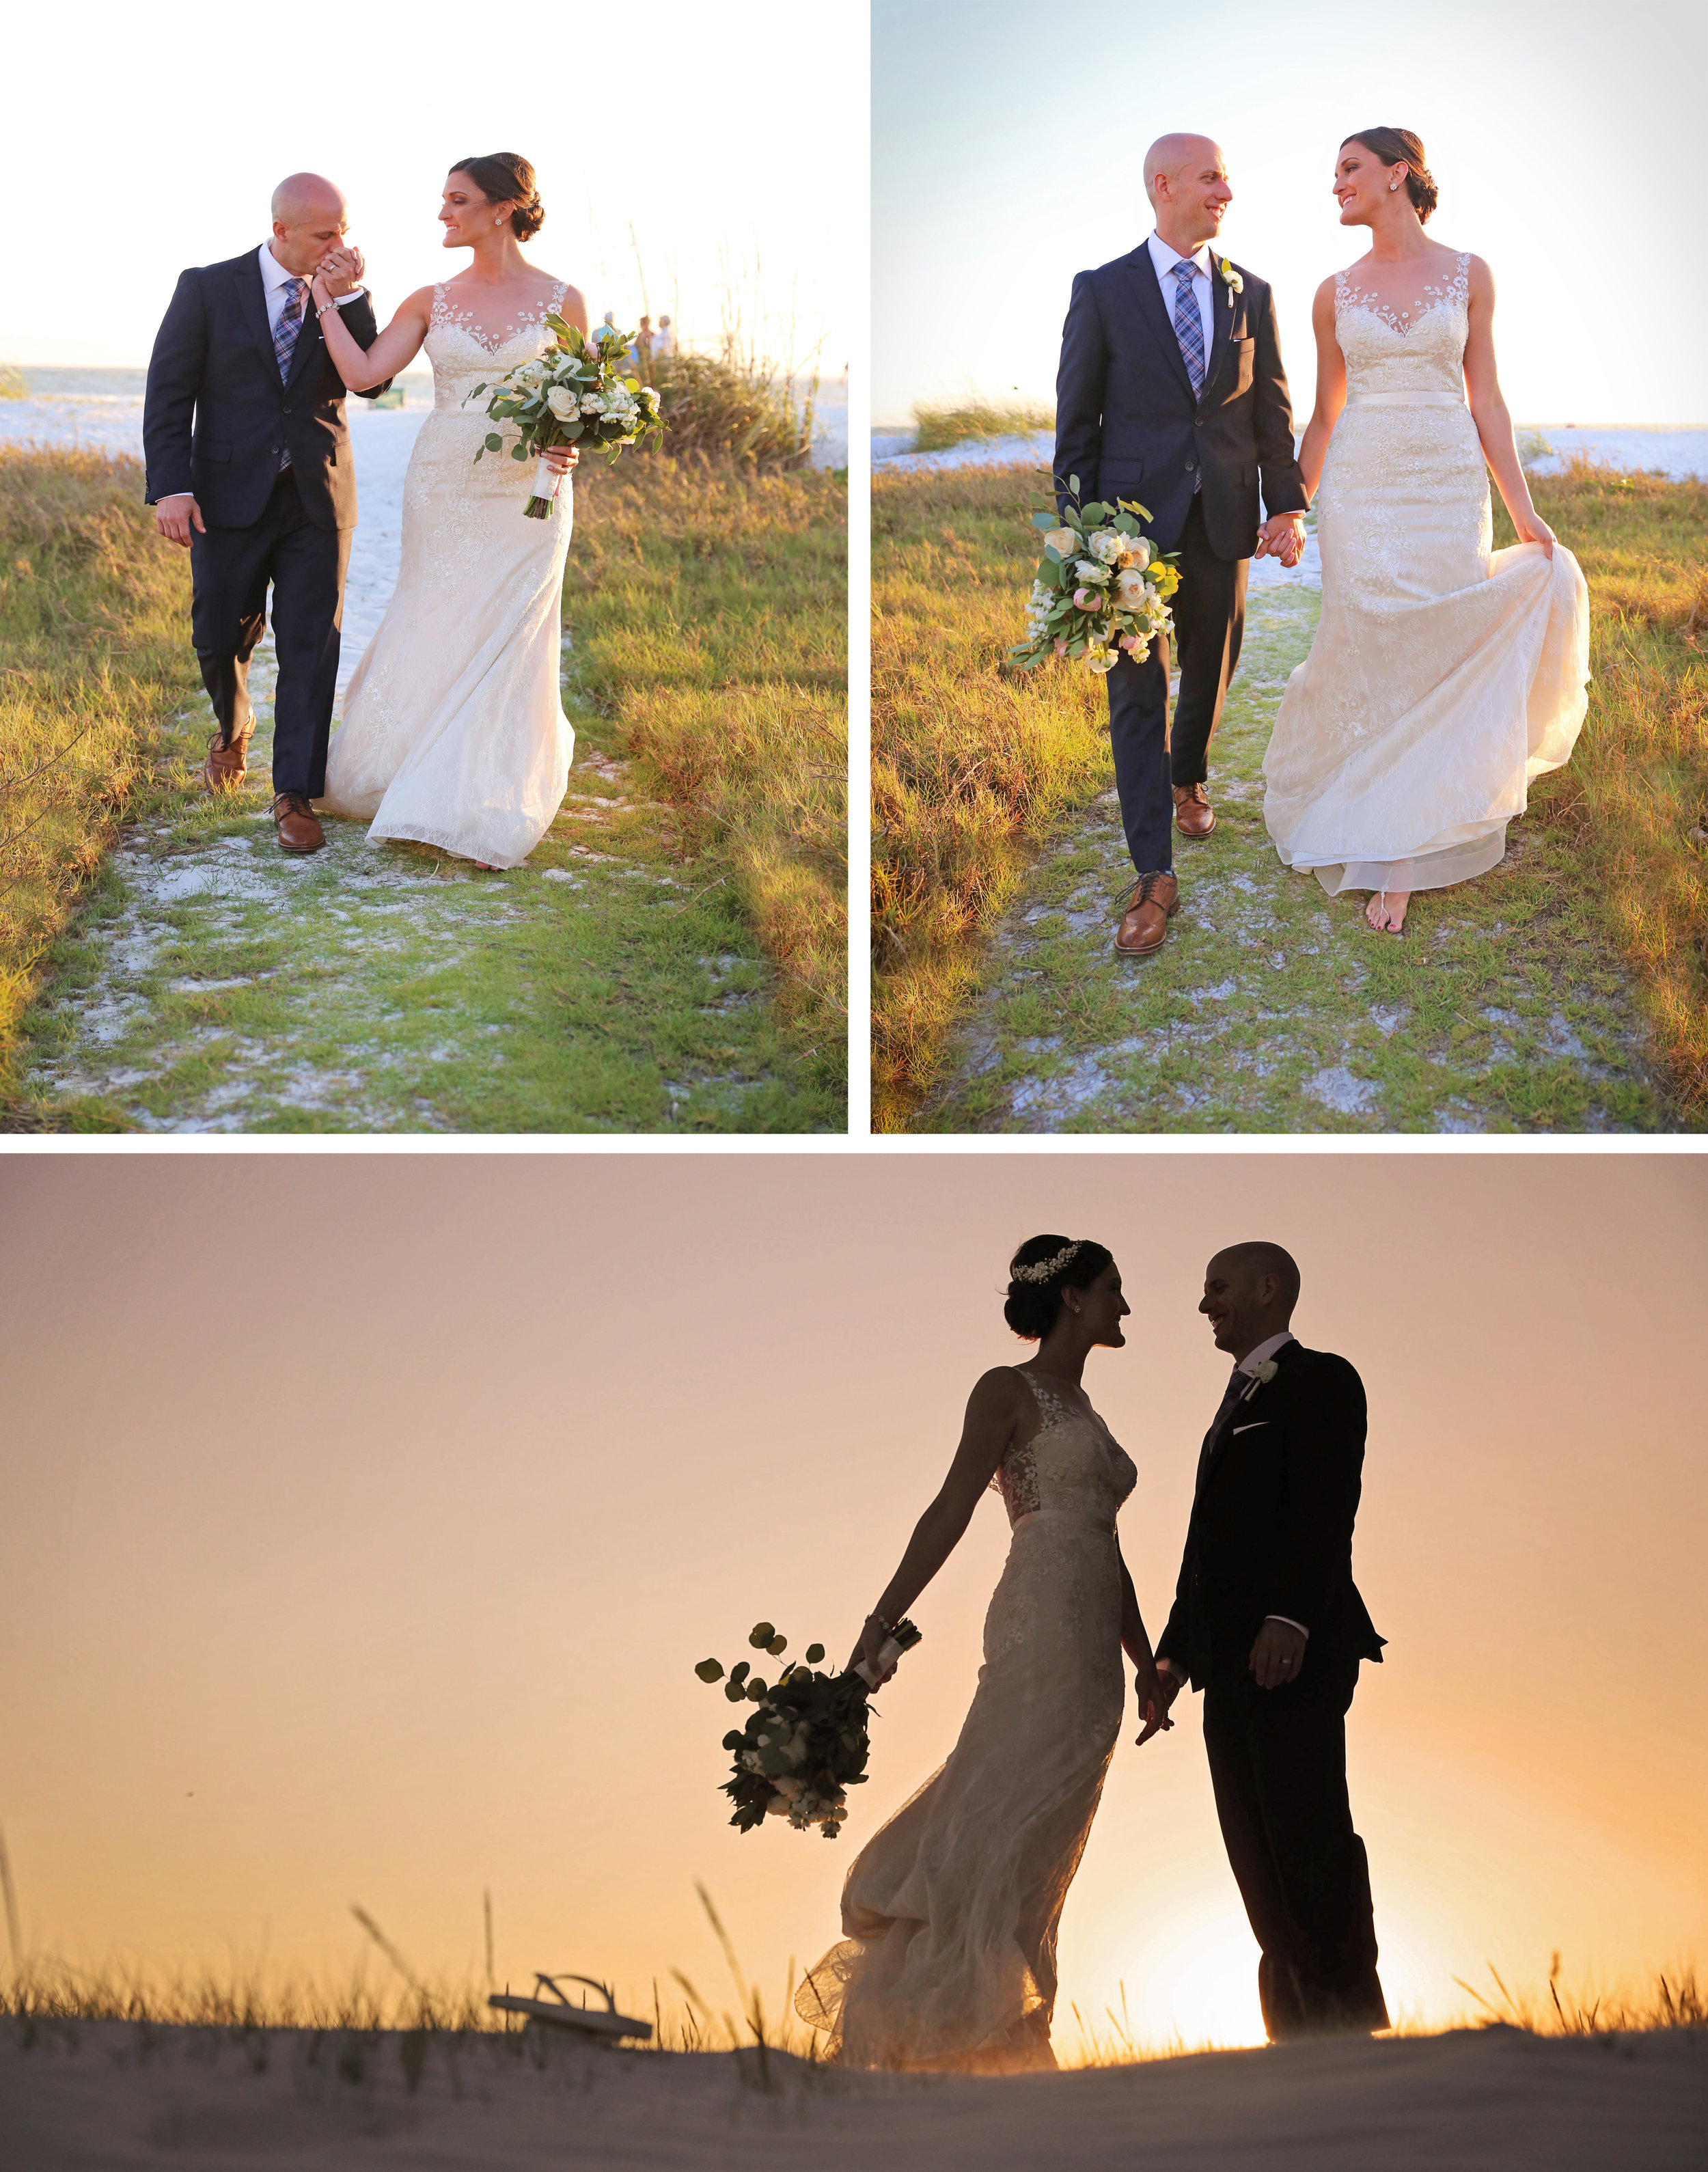 Siesta Key provided a sentimental setting for these love birds, and a stunning backdrop with that beach front sunset!